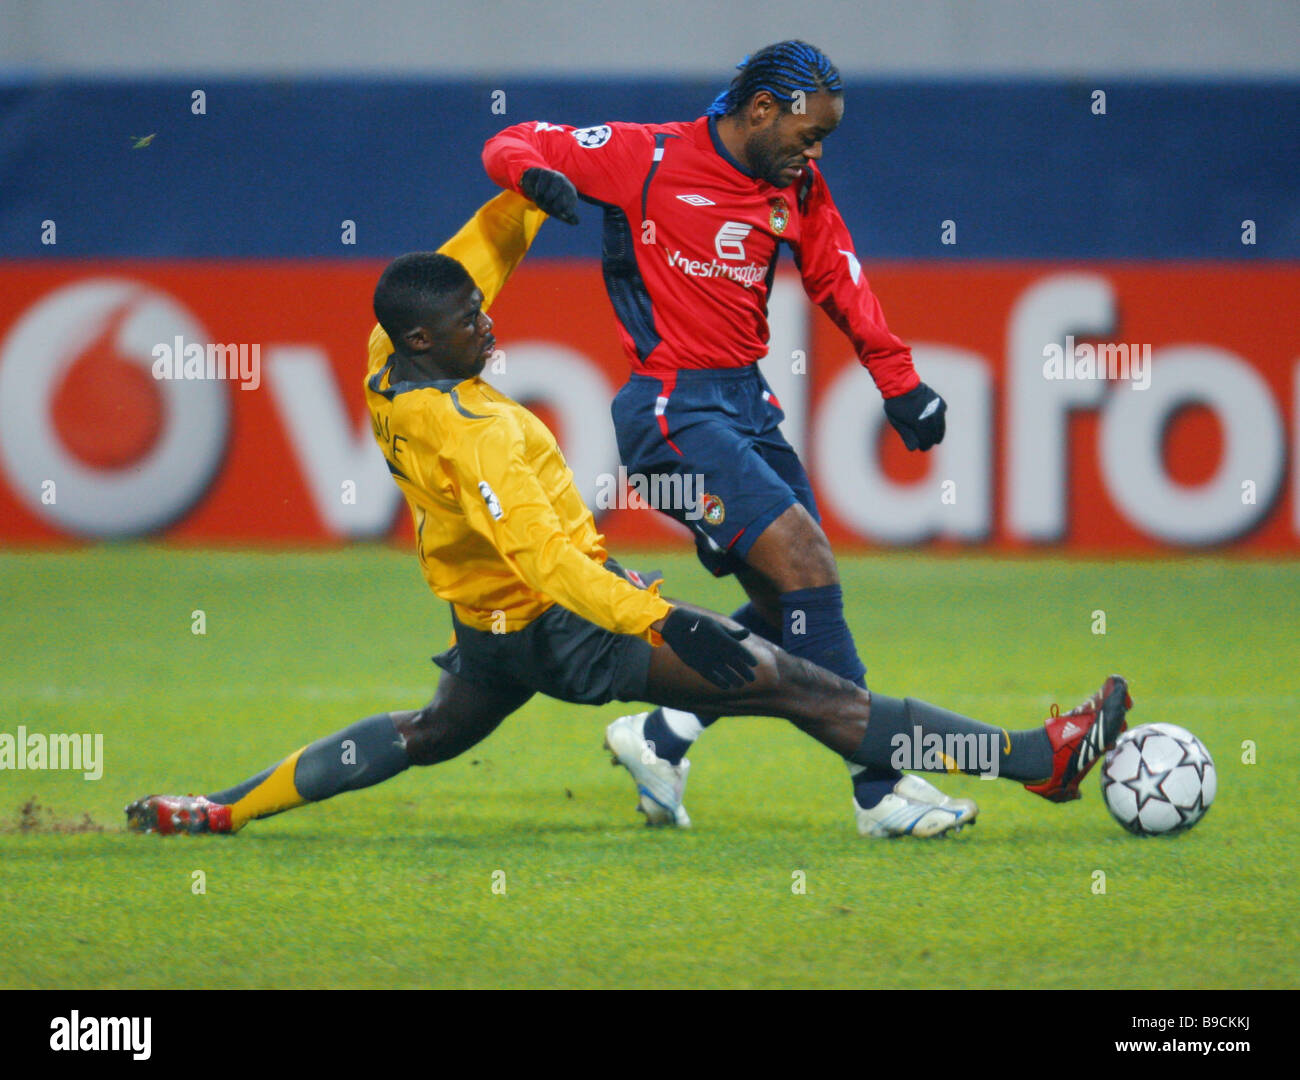 A Champions League match between CSKA Moscow and Arsenal London - Stock Image